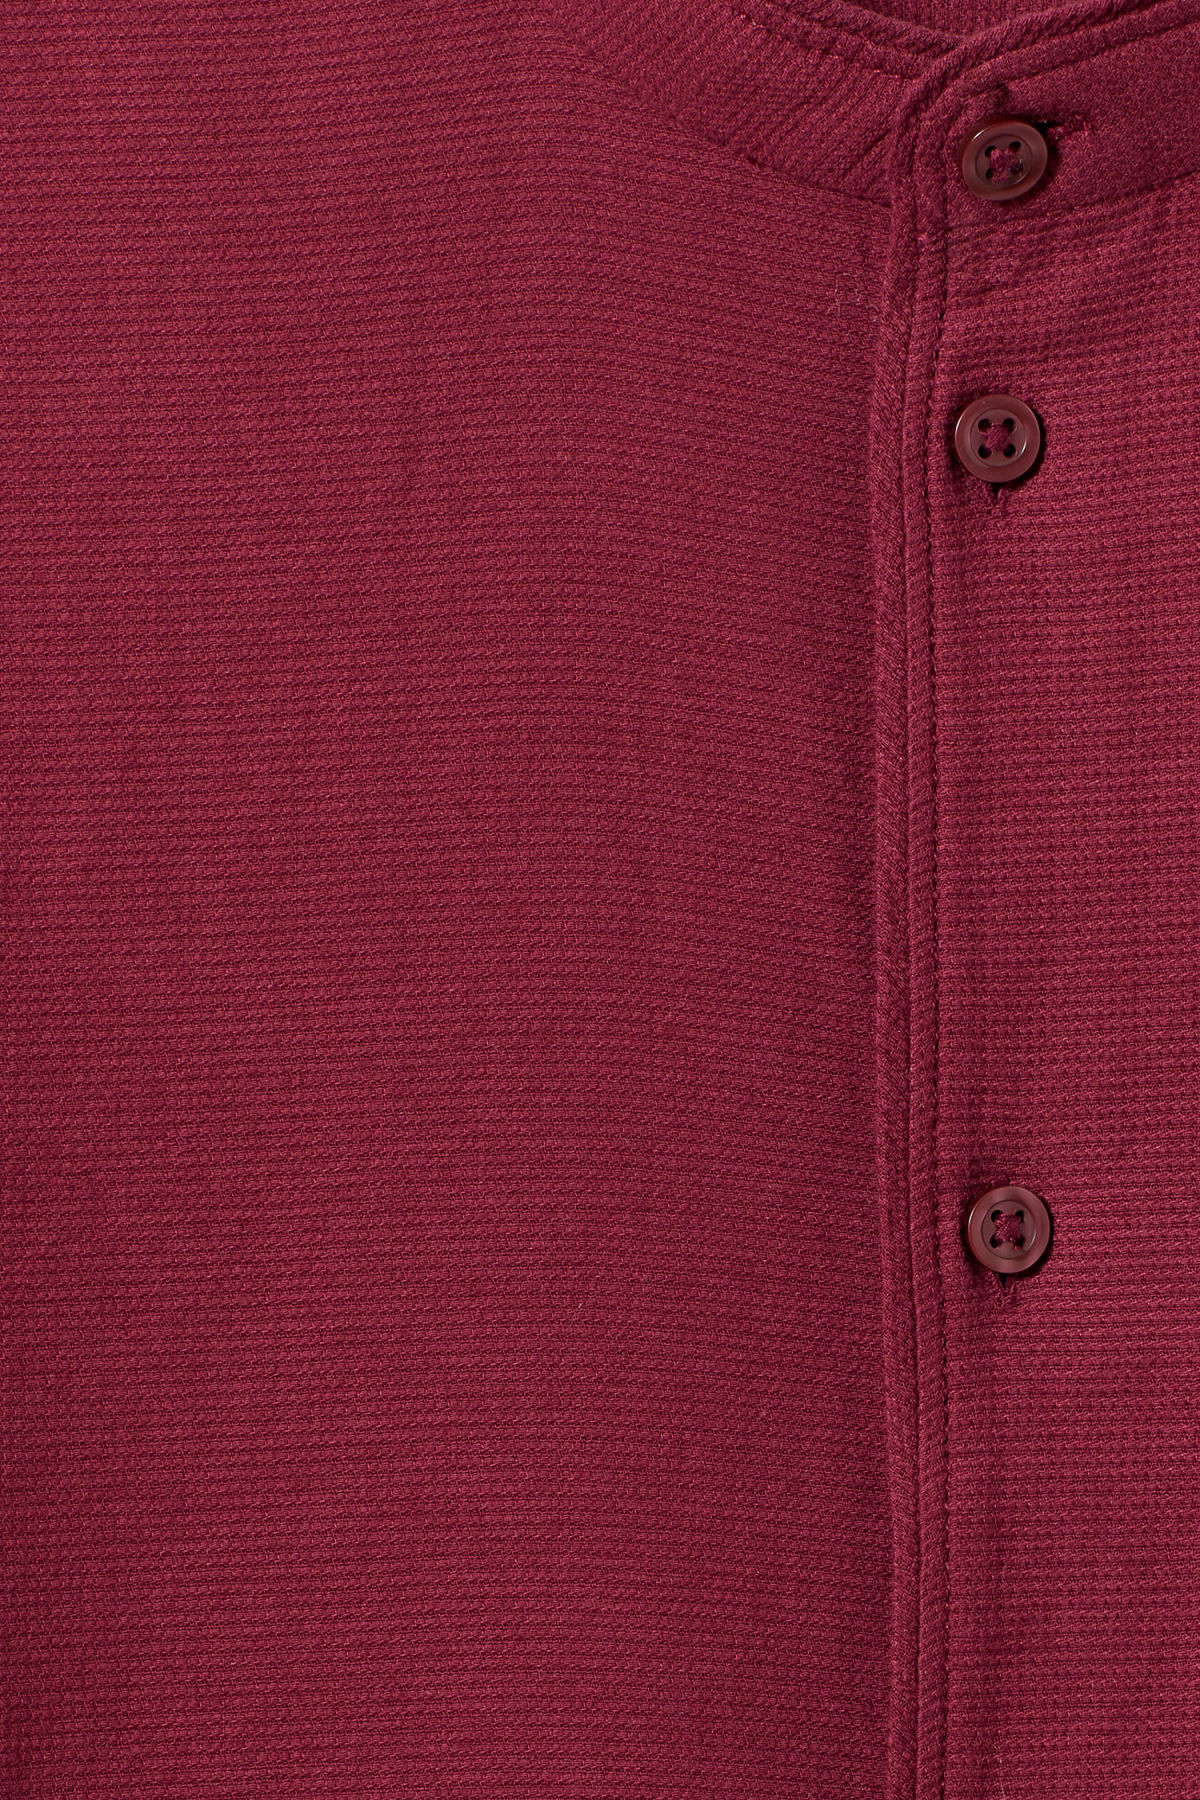 Detailed image of Weekday hunt shirt in red